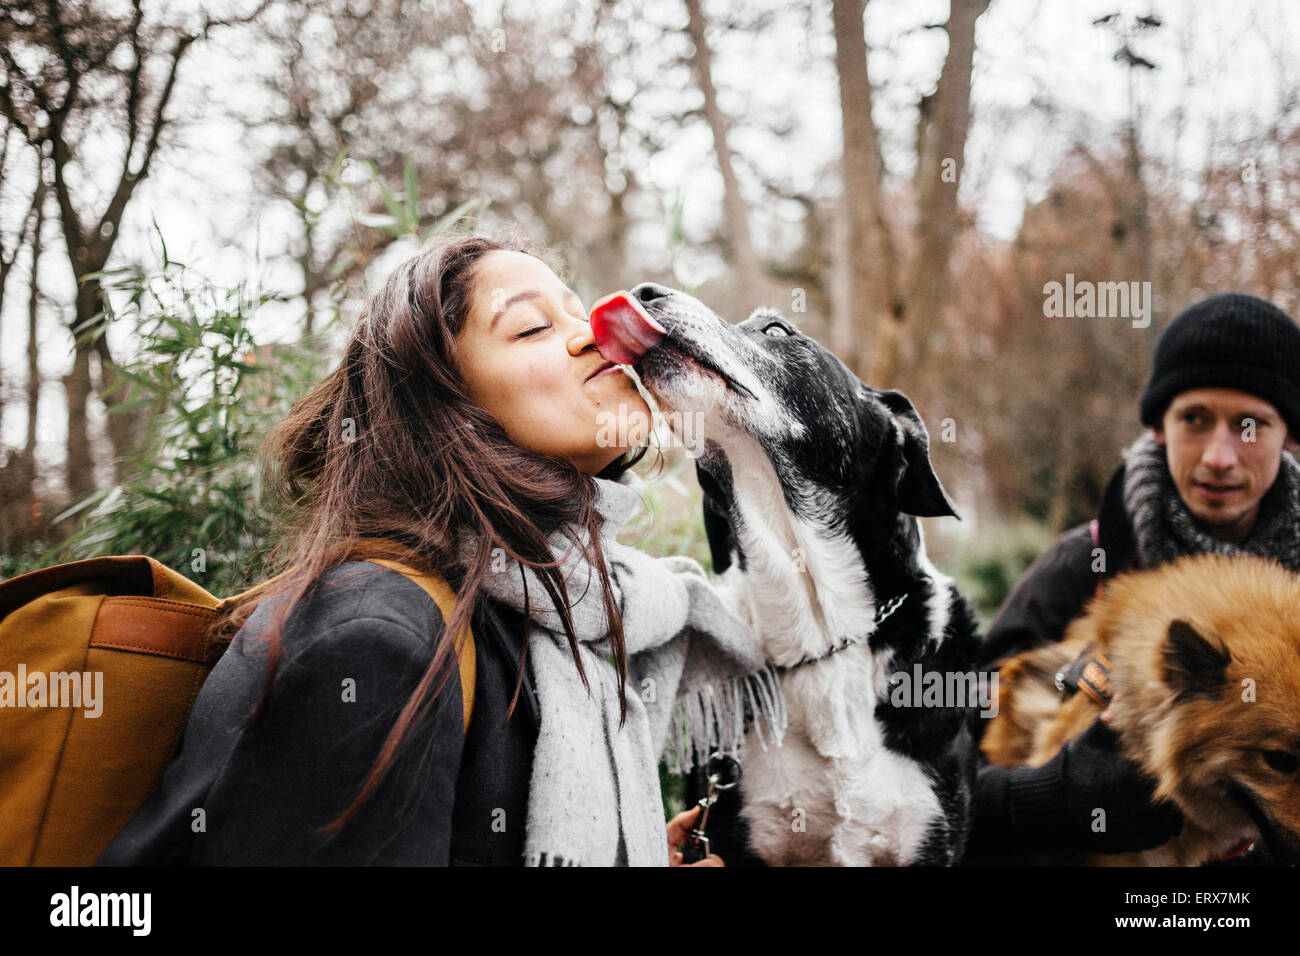 Mixed-breed dog licking woman with man and Eurasier in background at park - Stock Image